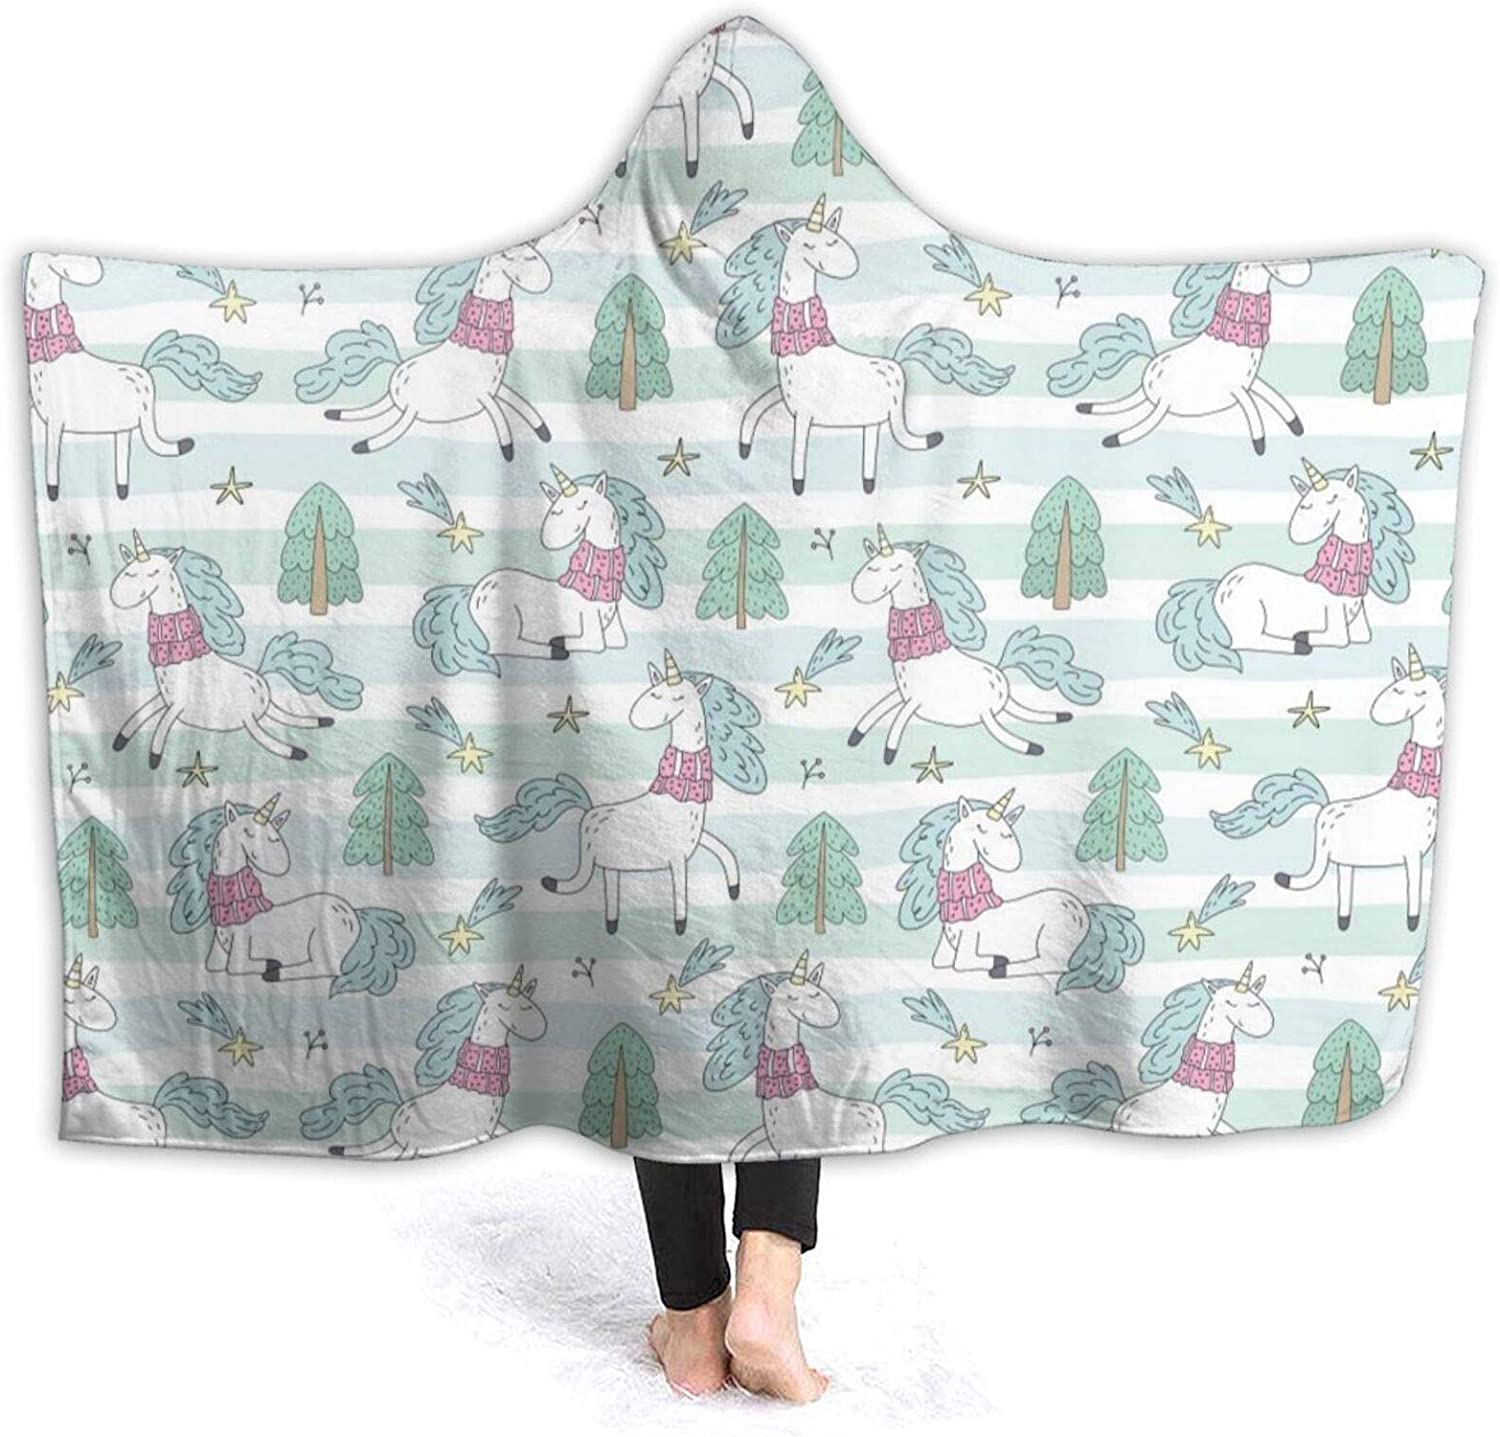 Cute Christmas Character We OFFer at cheap prices Pattern Hooded Flannel Blanket B Over item handling Luxury